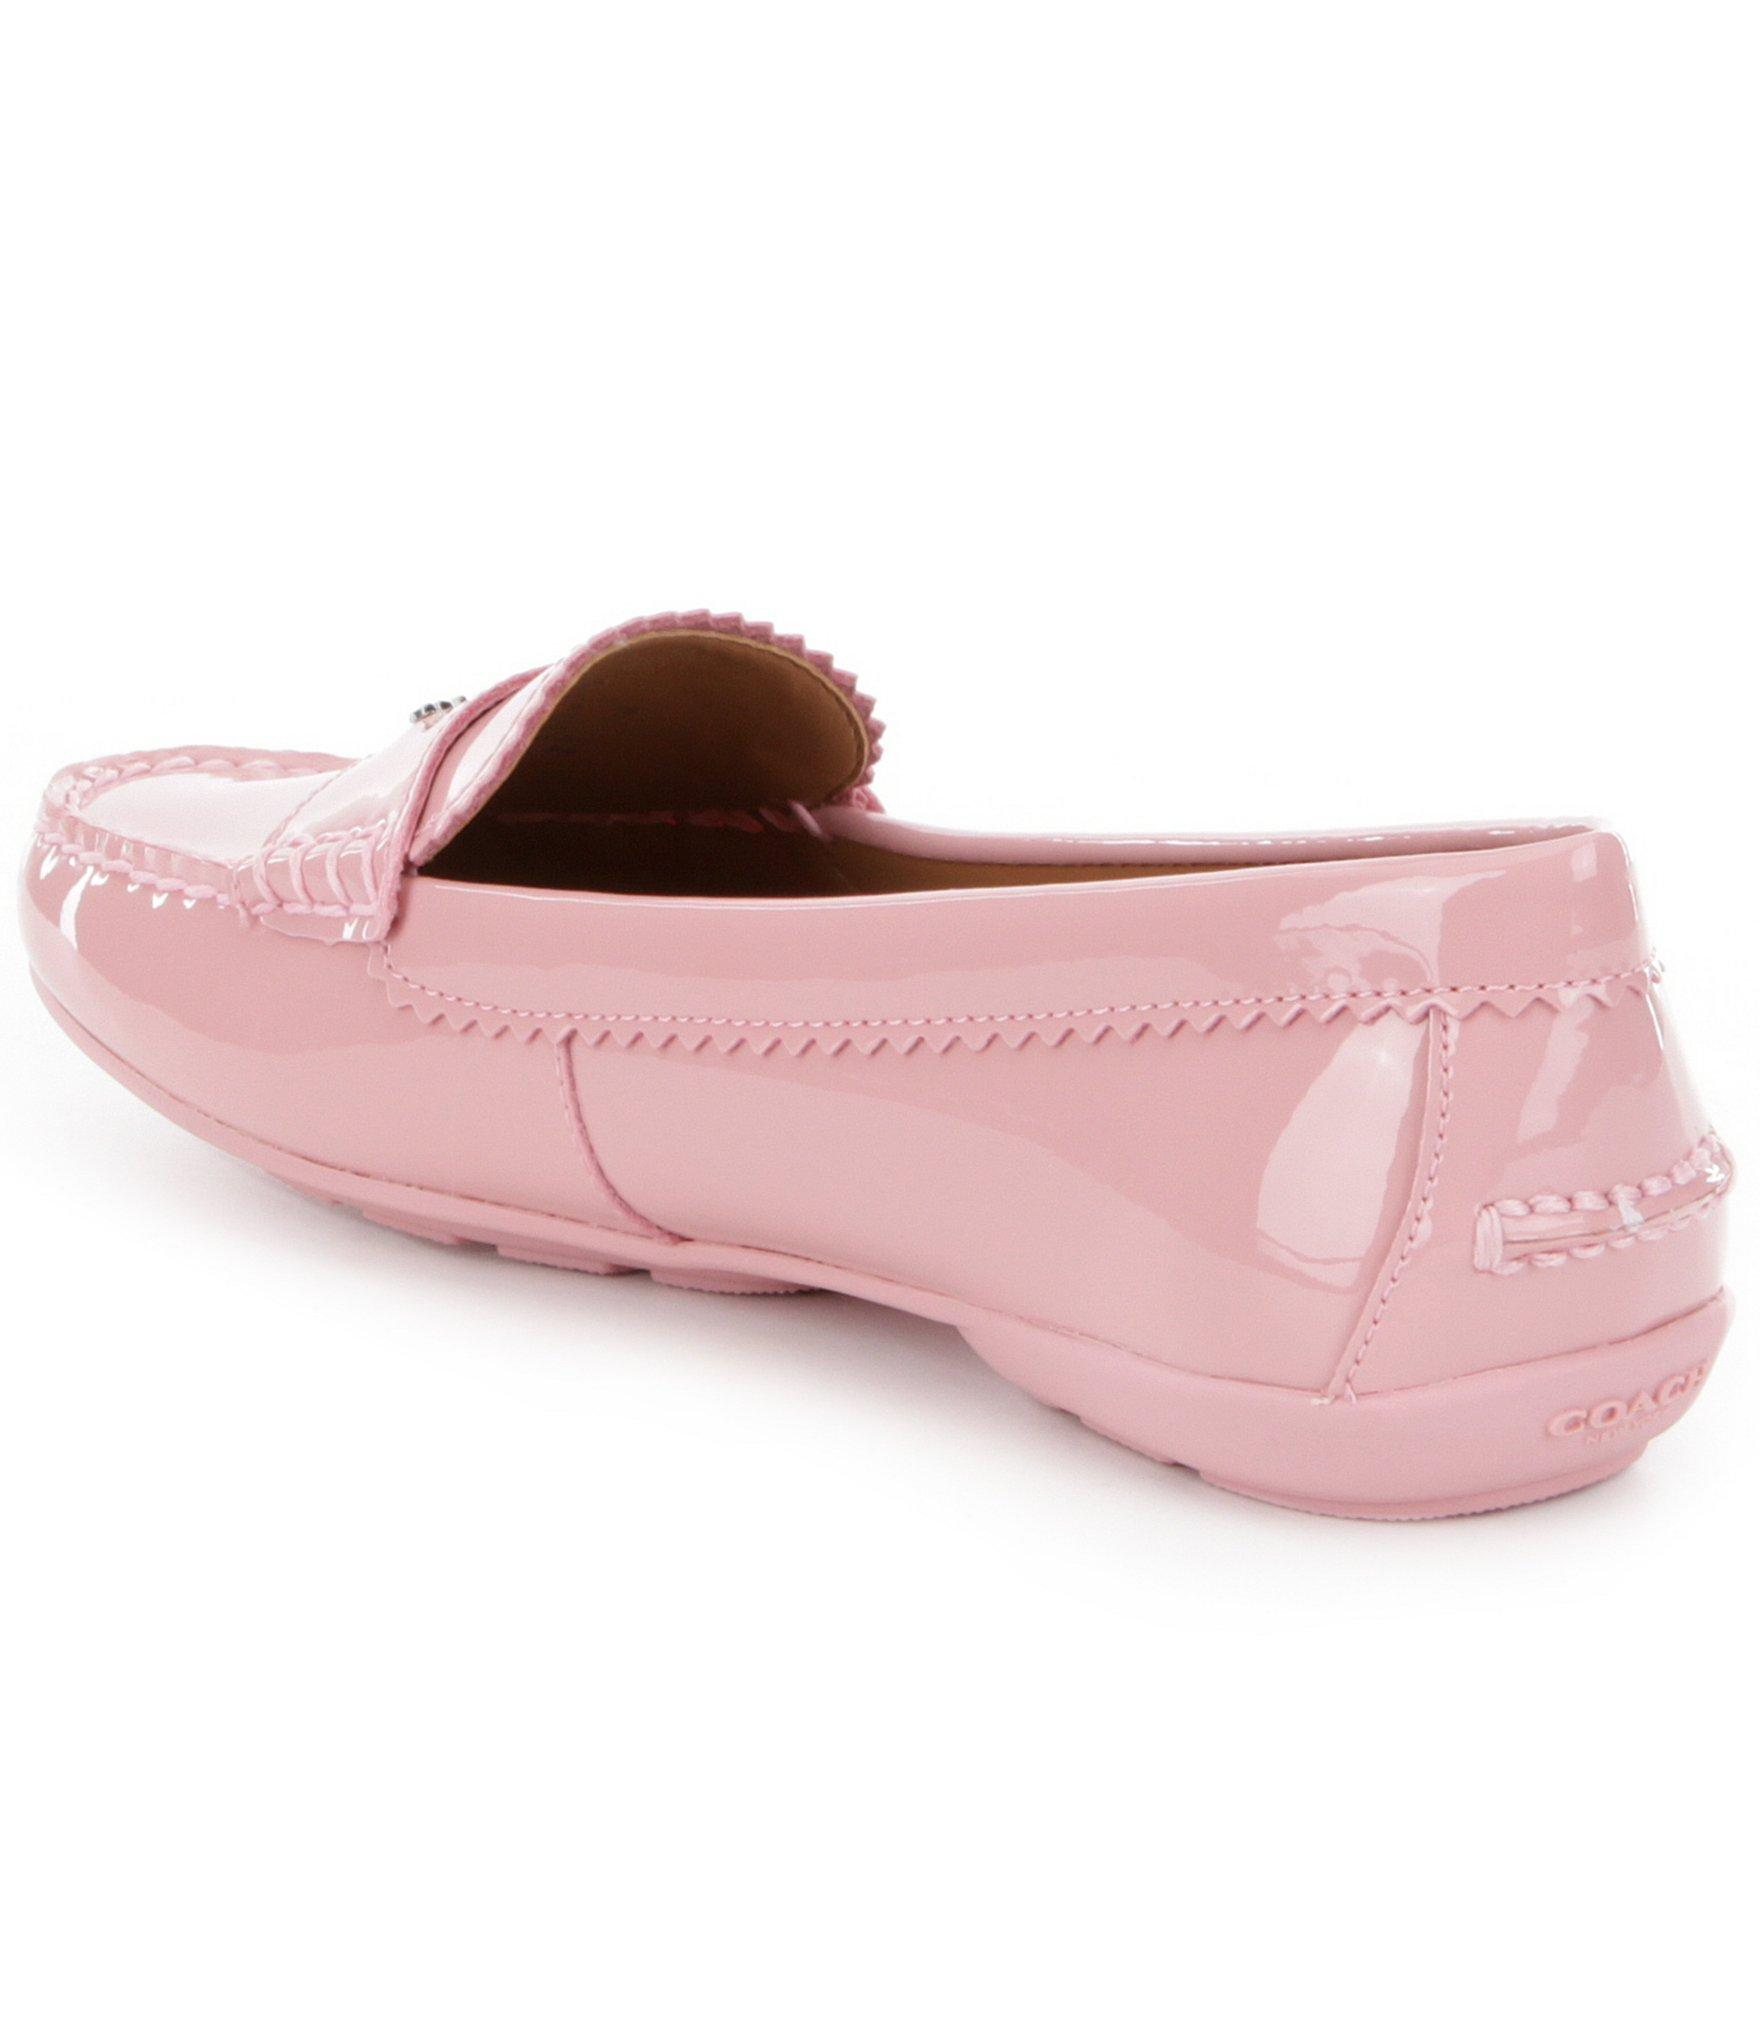 Coach Coach Womens Odette Closed Toe Loafers Loafers